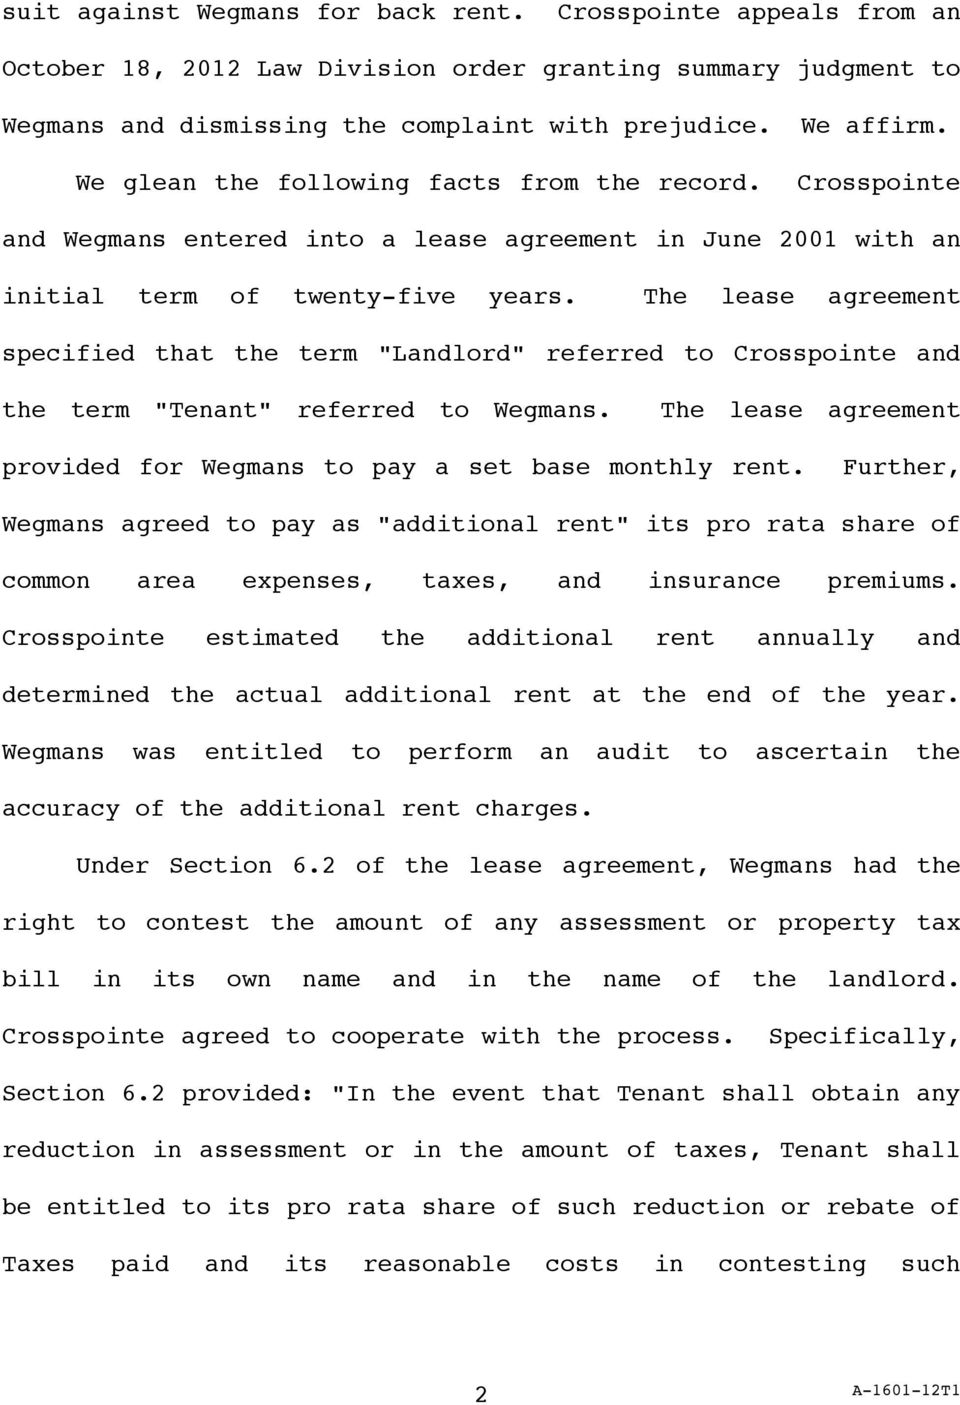 "The lease agreement specified that the term ""Landlord"" referred to Crosspointe and the term ""Tenant"" referred to Wegmans. The lease agreement provided for Wegmans to pay a set base monthly rent."